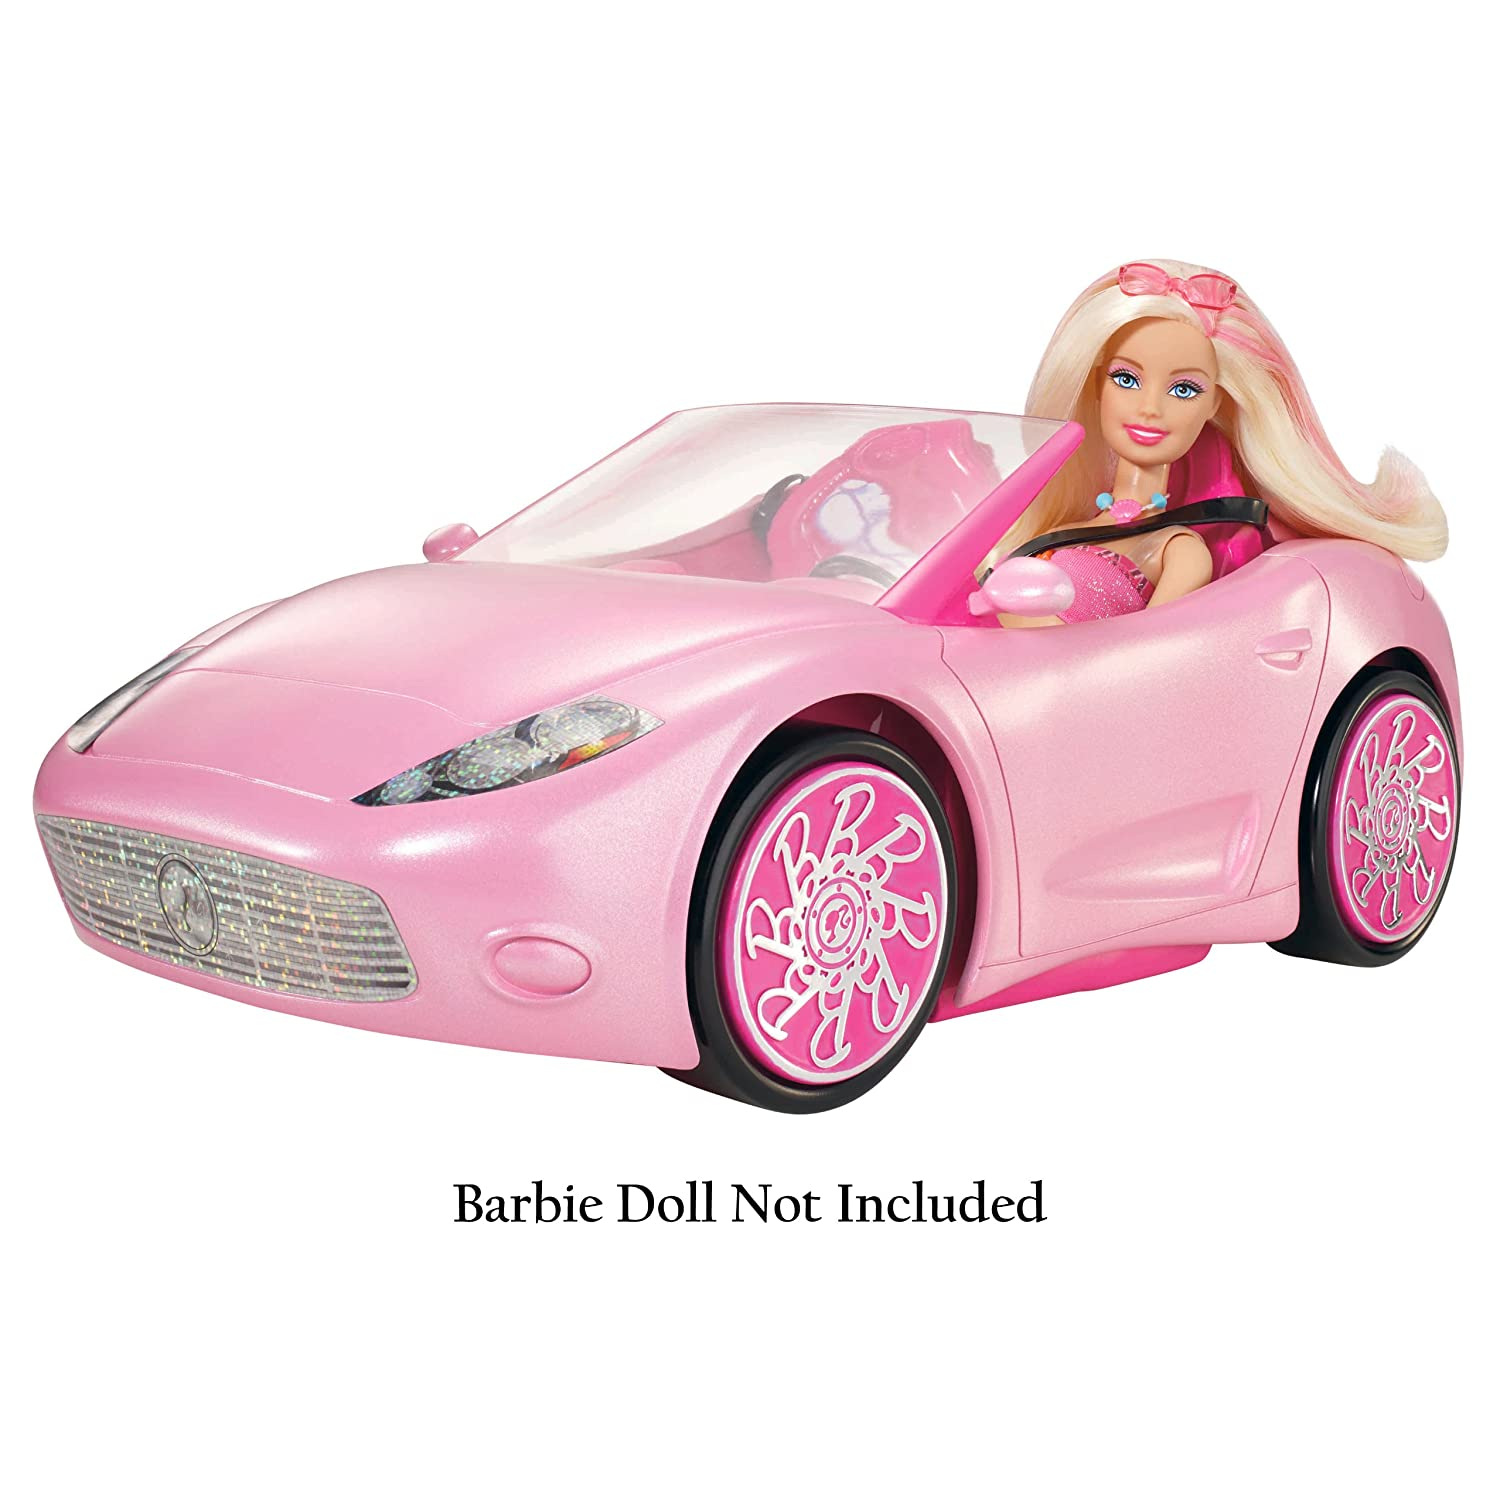 barbie glam convertible pink car vehicle w3158 new fast. Black Bedroom Furniture Sets. Home Design Ideas